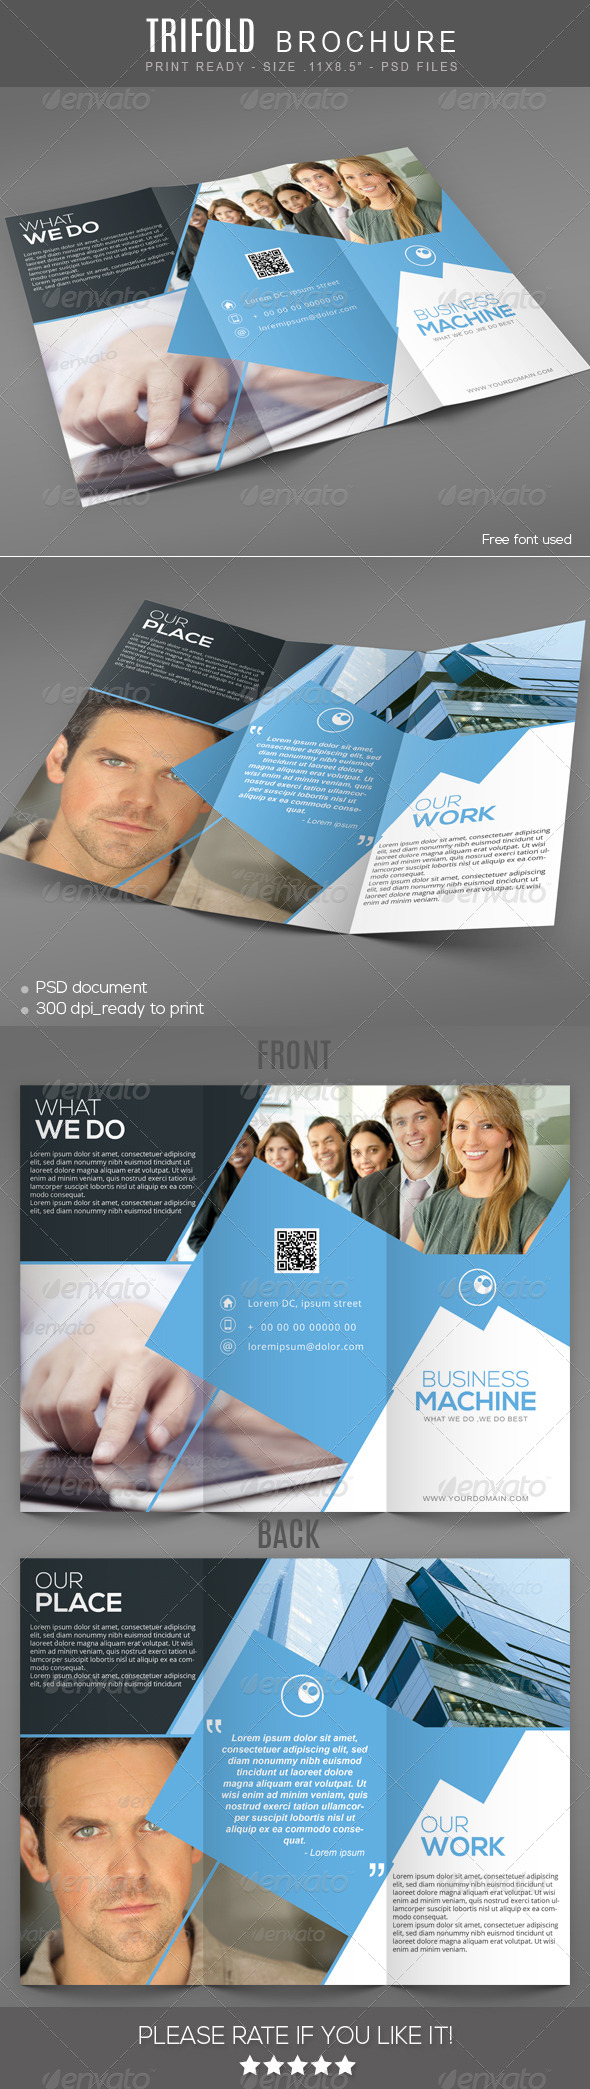 GraphicRiver Business machine Trifold Brochure 7606109